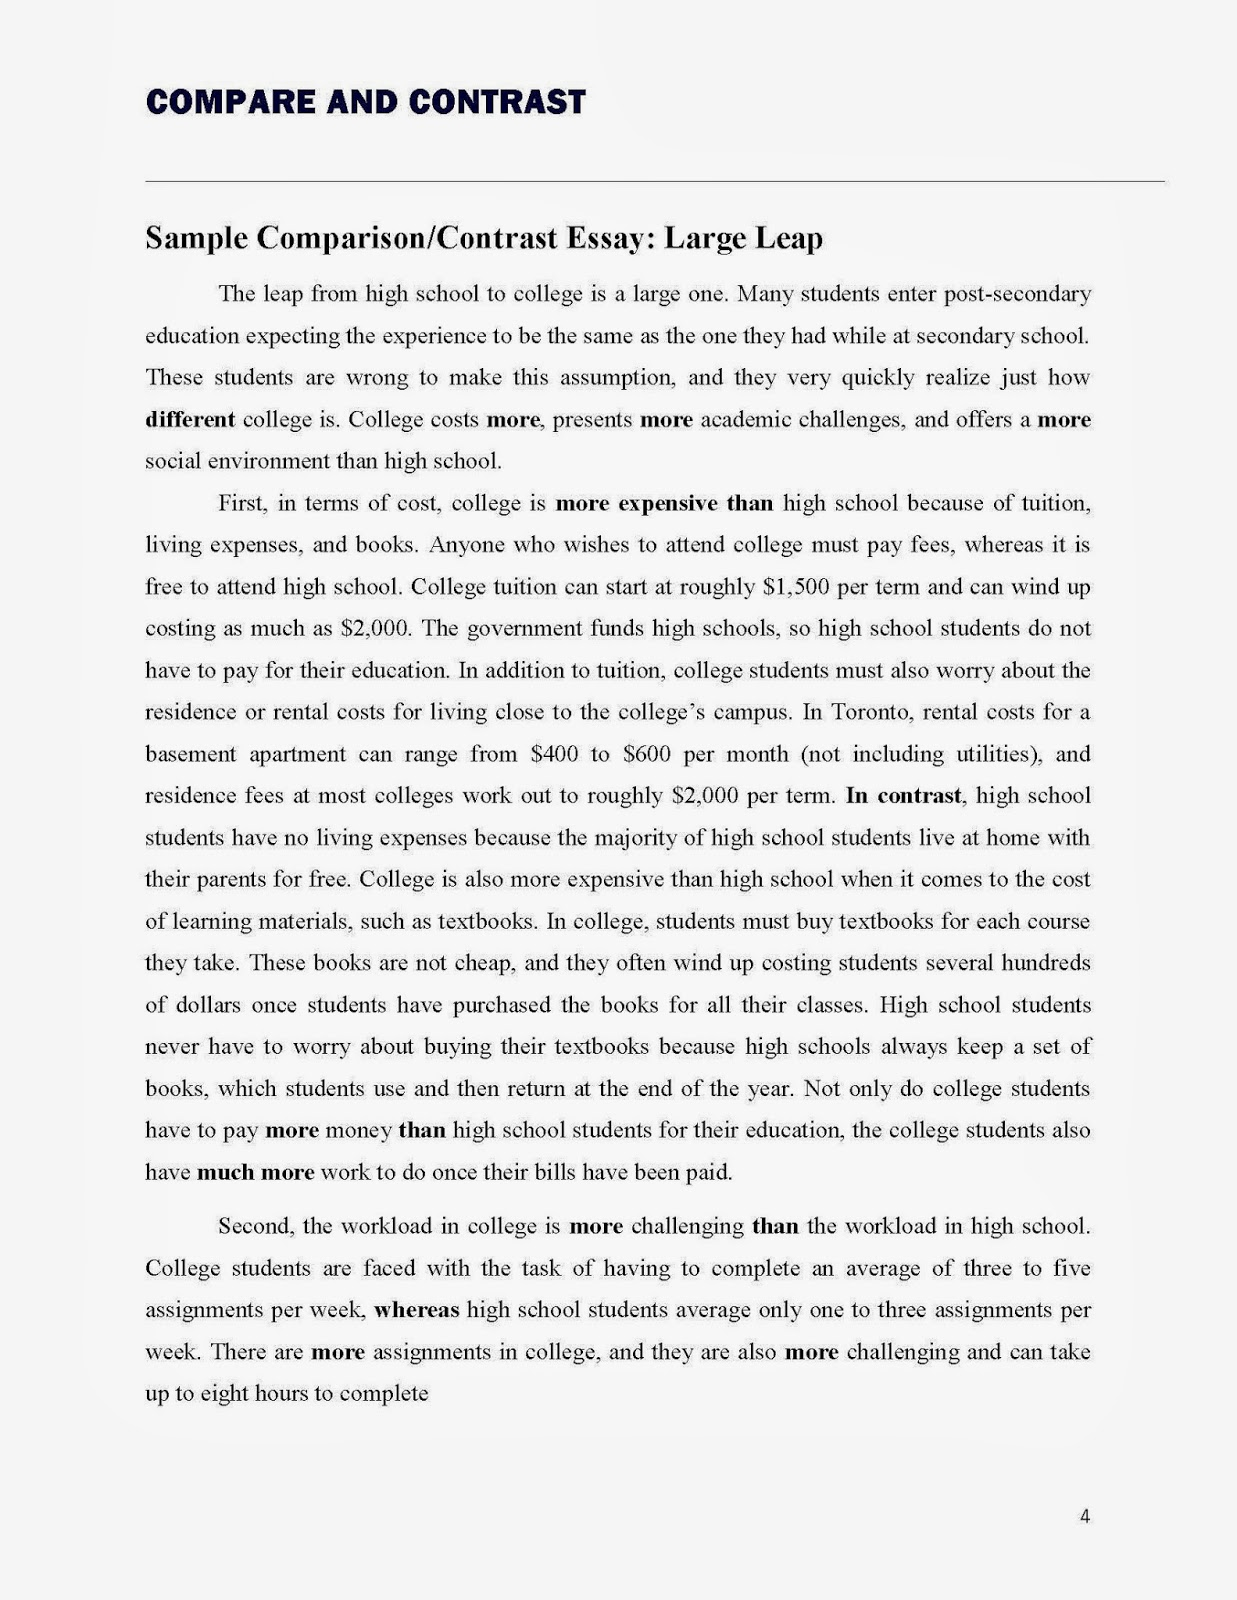 006 Comparison Contrast Essay Topics Example Compare20and20contrast20essay Page 4 Magnificent Compare For Esl Students Ielts Technology Full